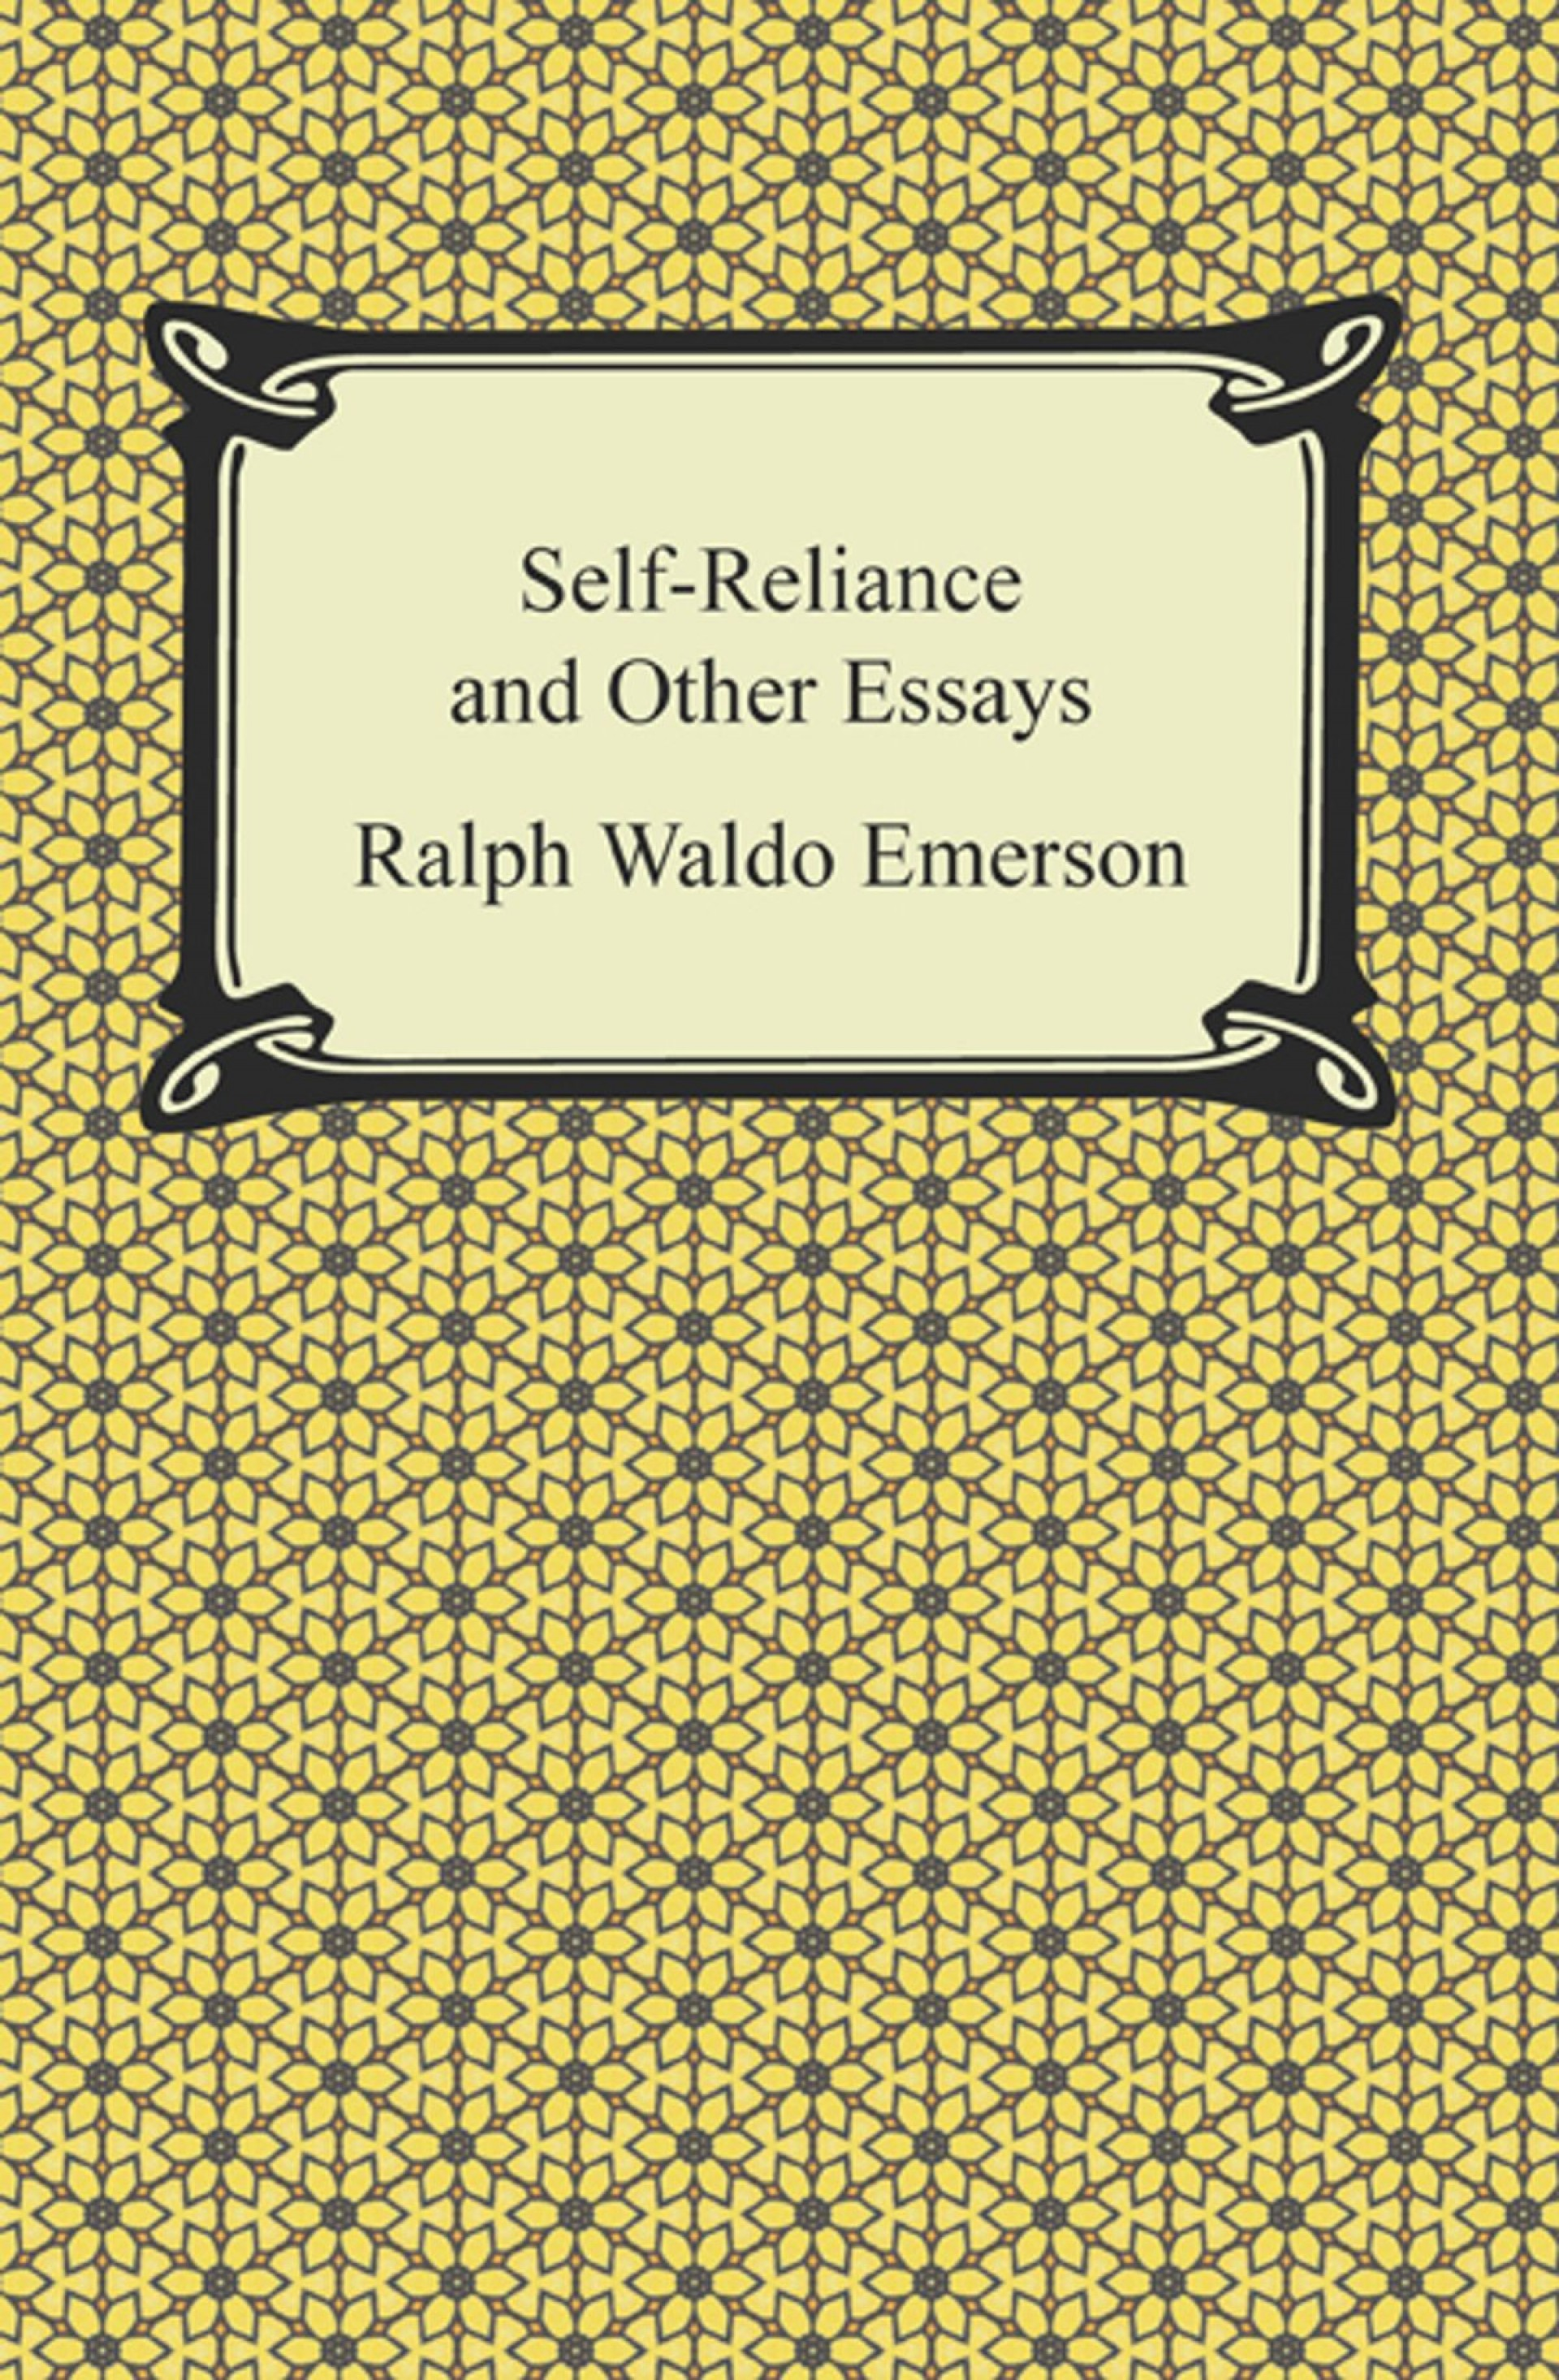 017 Self Reliance And Other Essays Essay Example Formidable Ekşi Self-reliance (dover Thrift Editions) Pdf Epub 1920